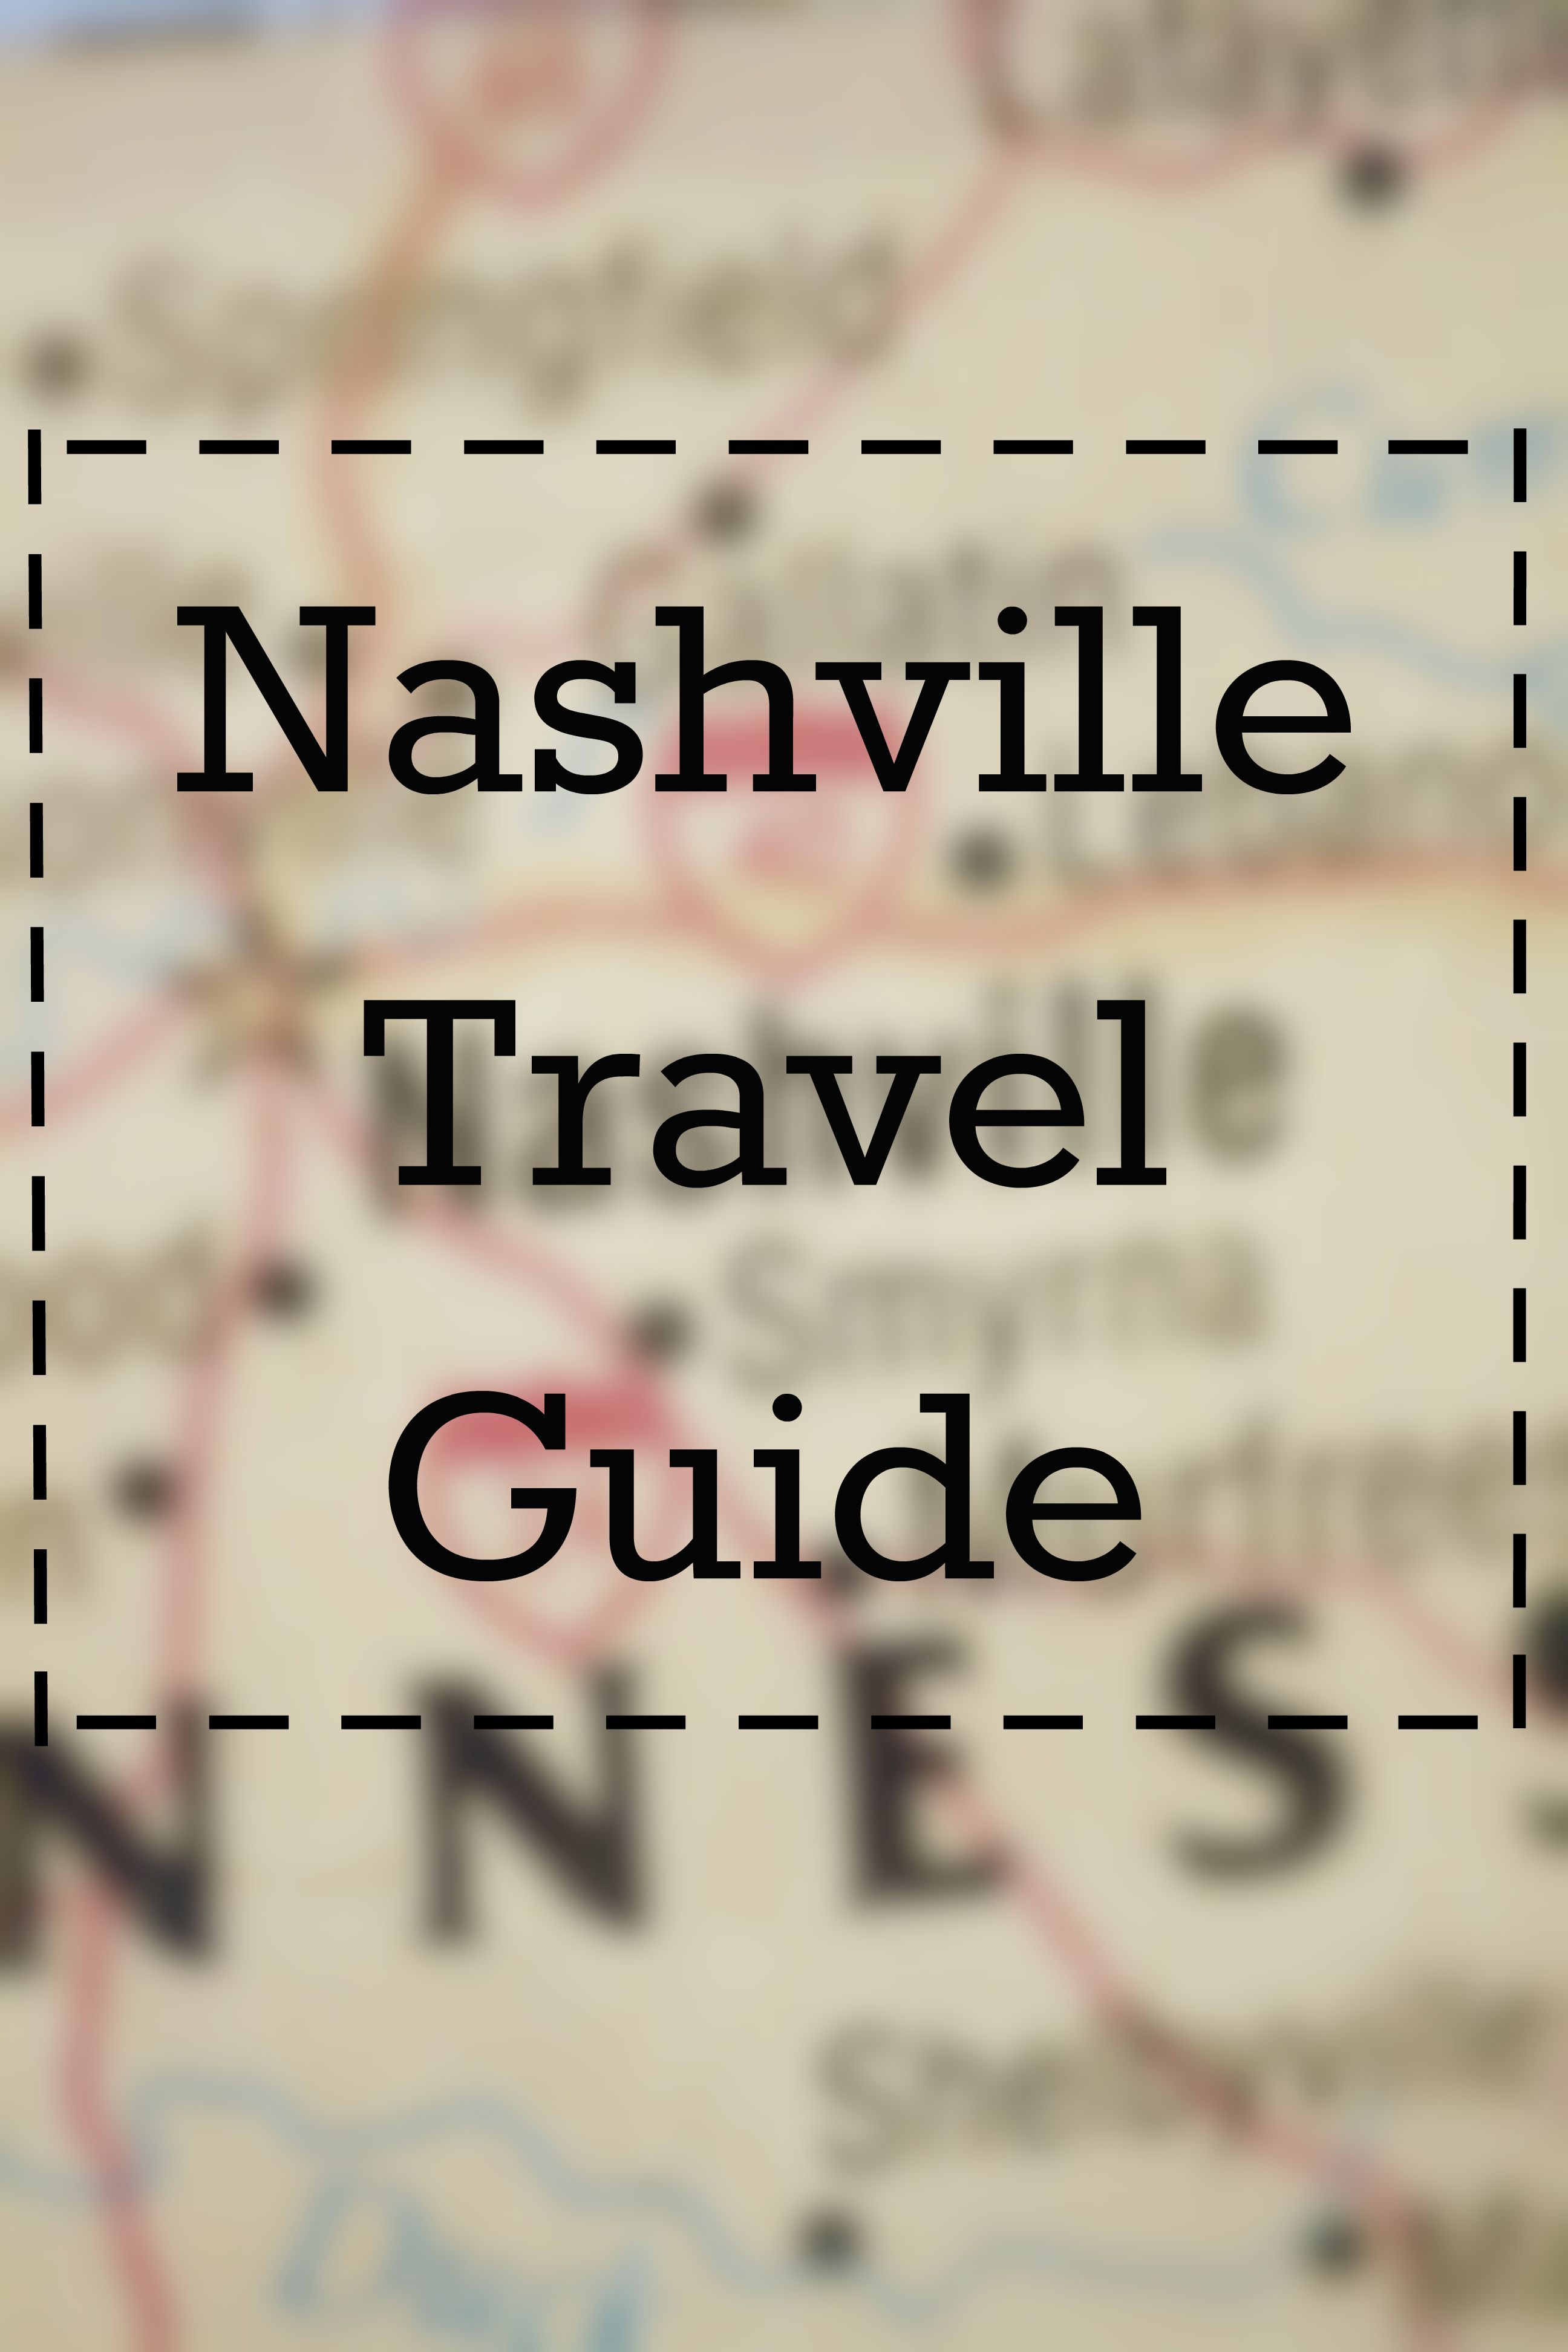 planning a trip to nashville? then check out this nashville travel